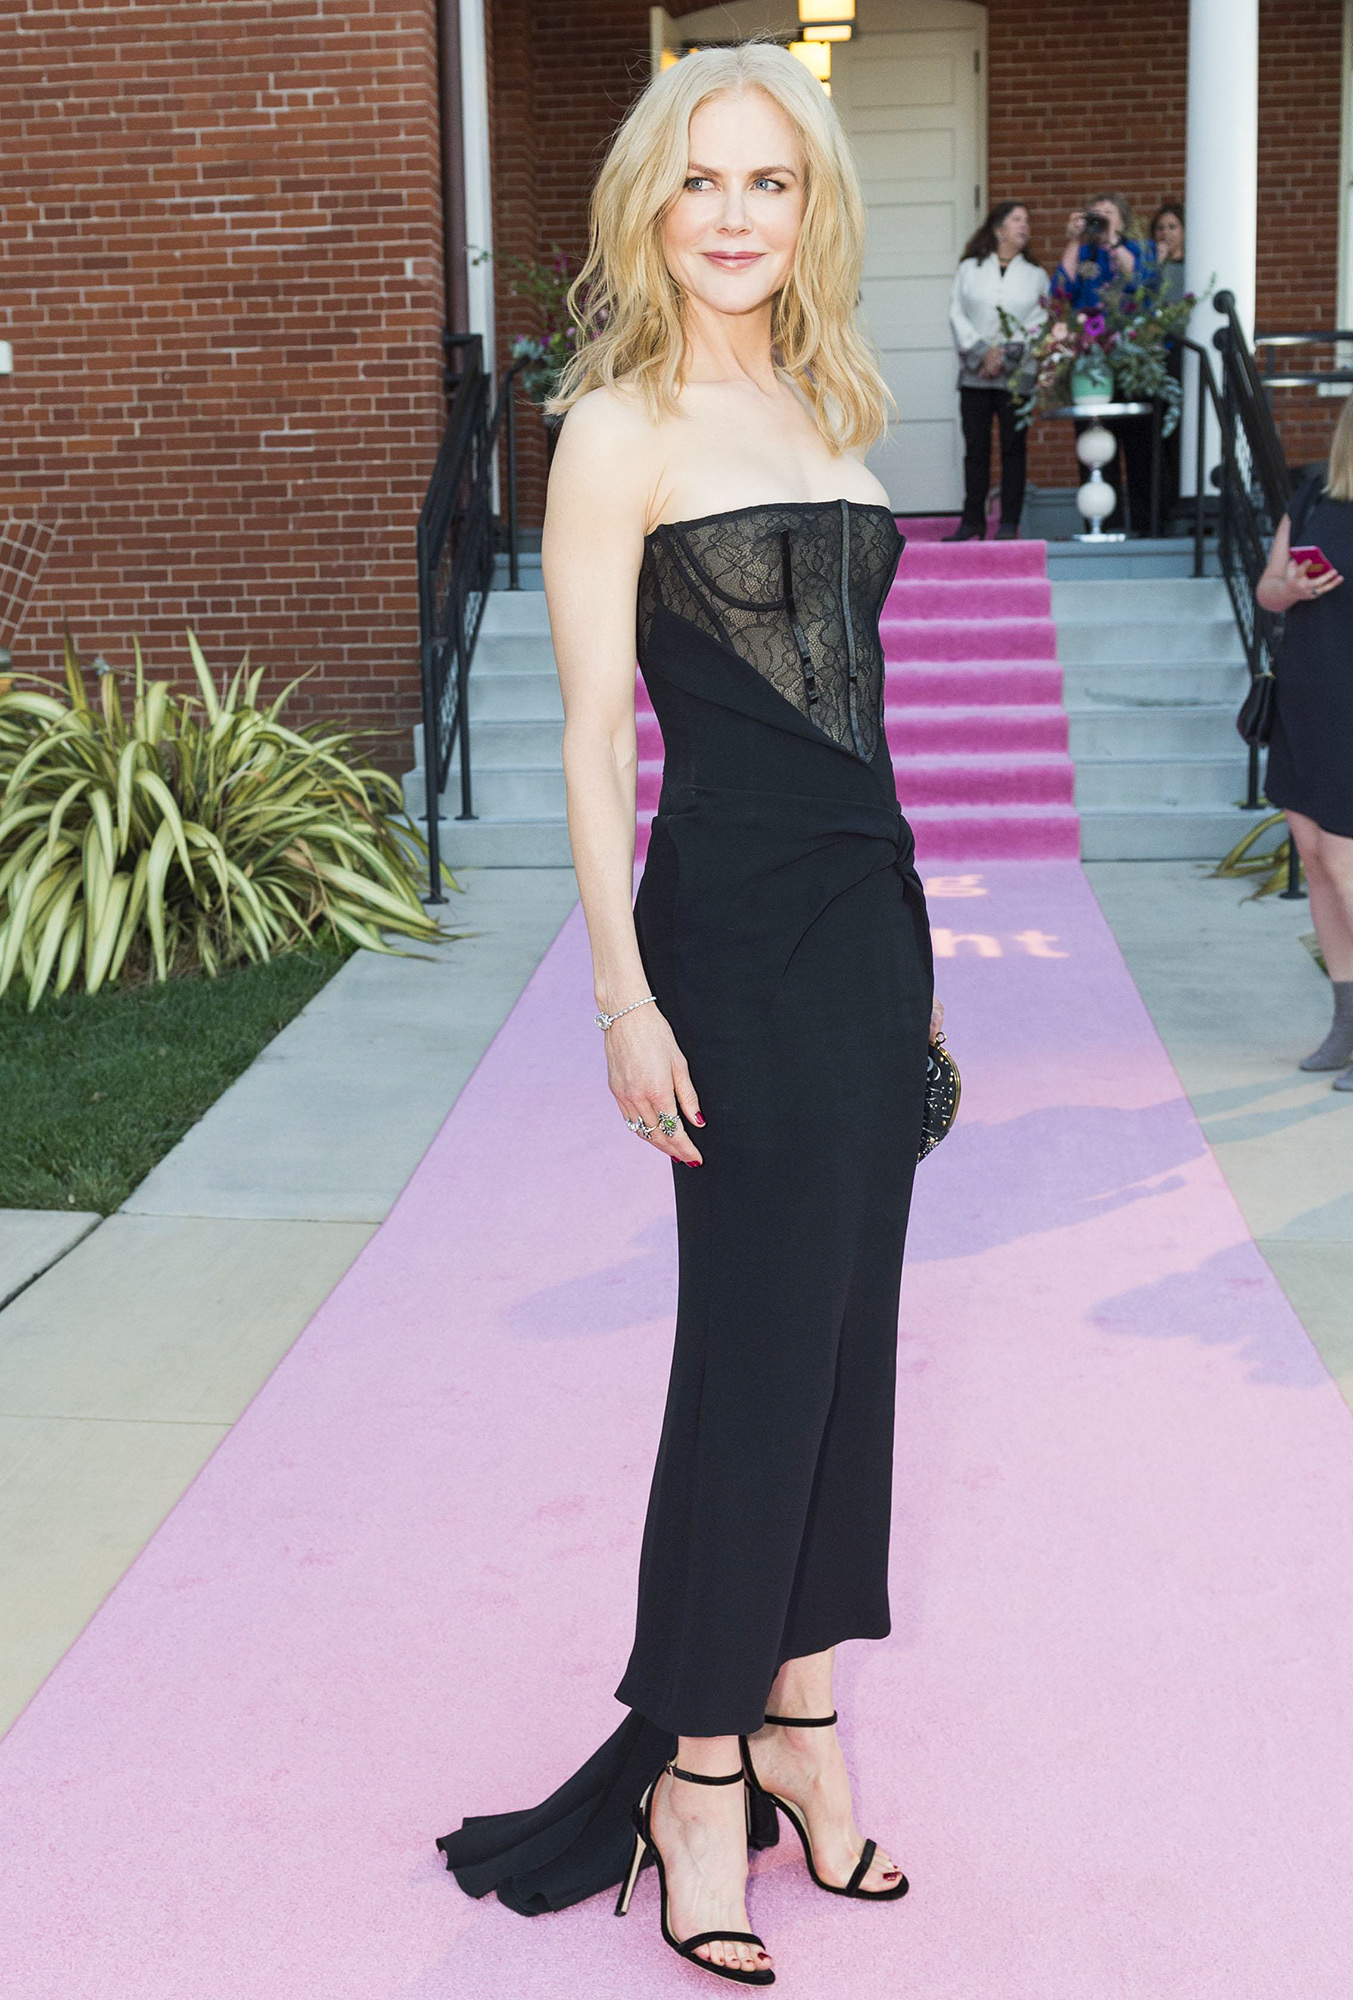 Nicole Kidman attends Futures Without Violence Hosts Big Little Night in San Francisco